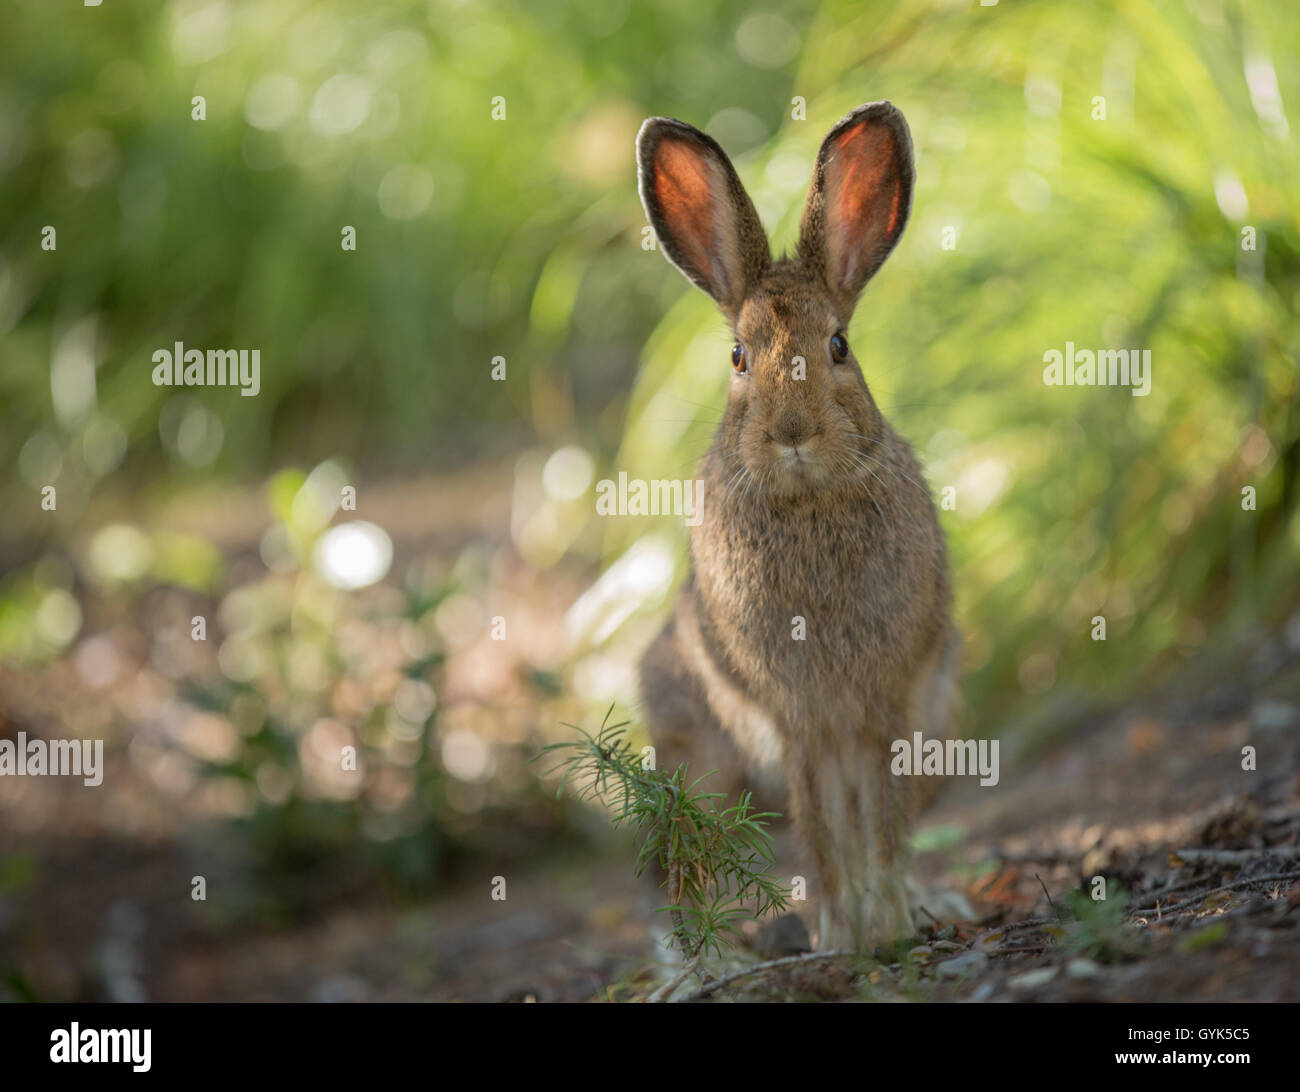 Bunny pausing for a photo - Stock Image